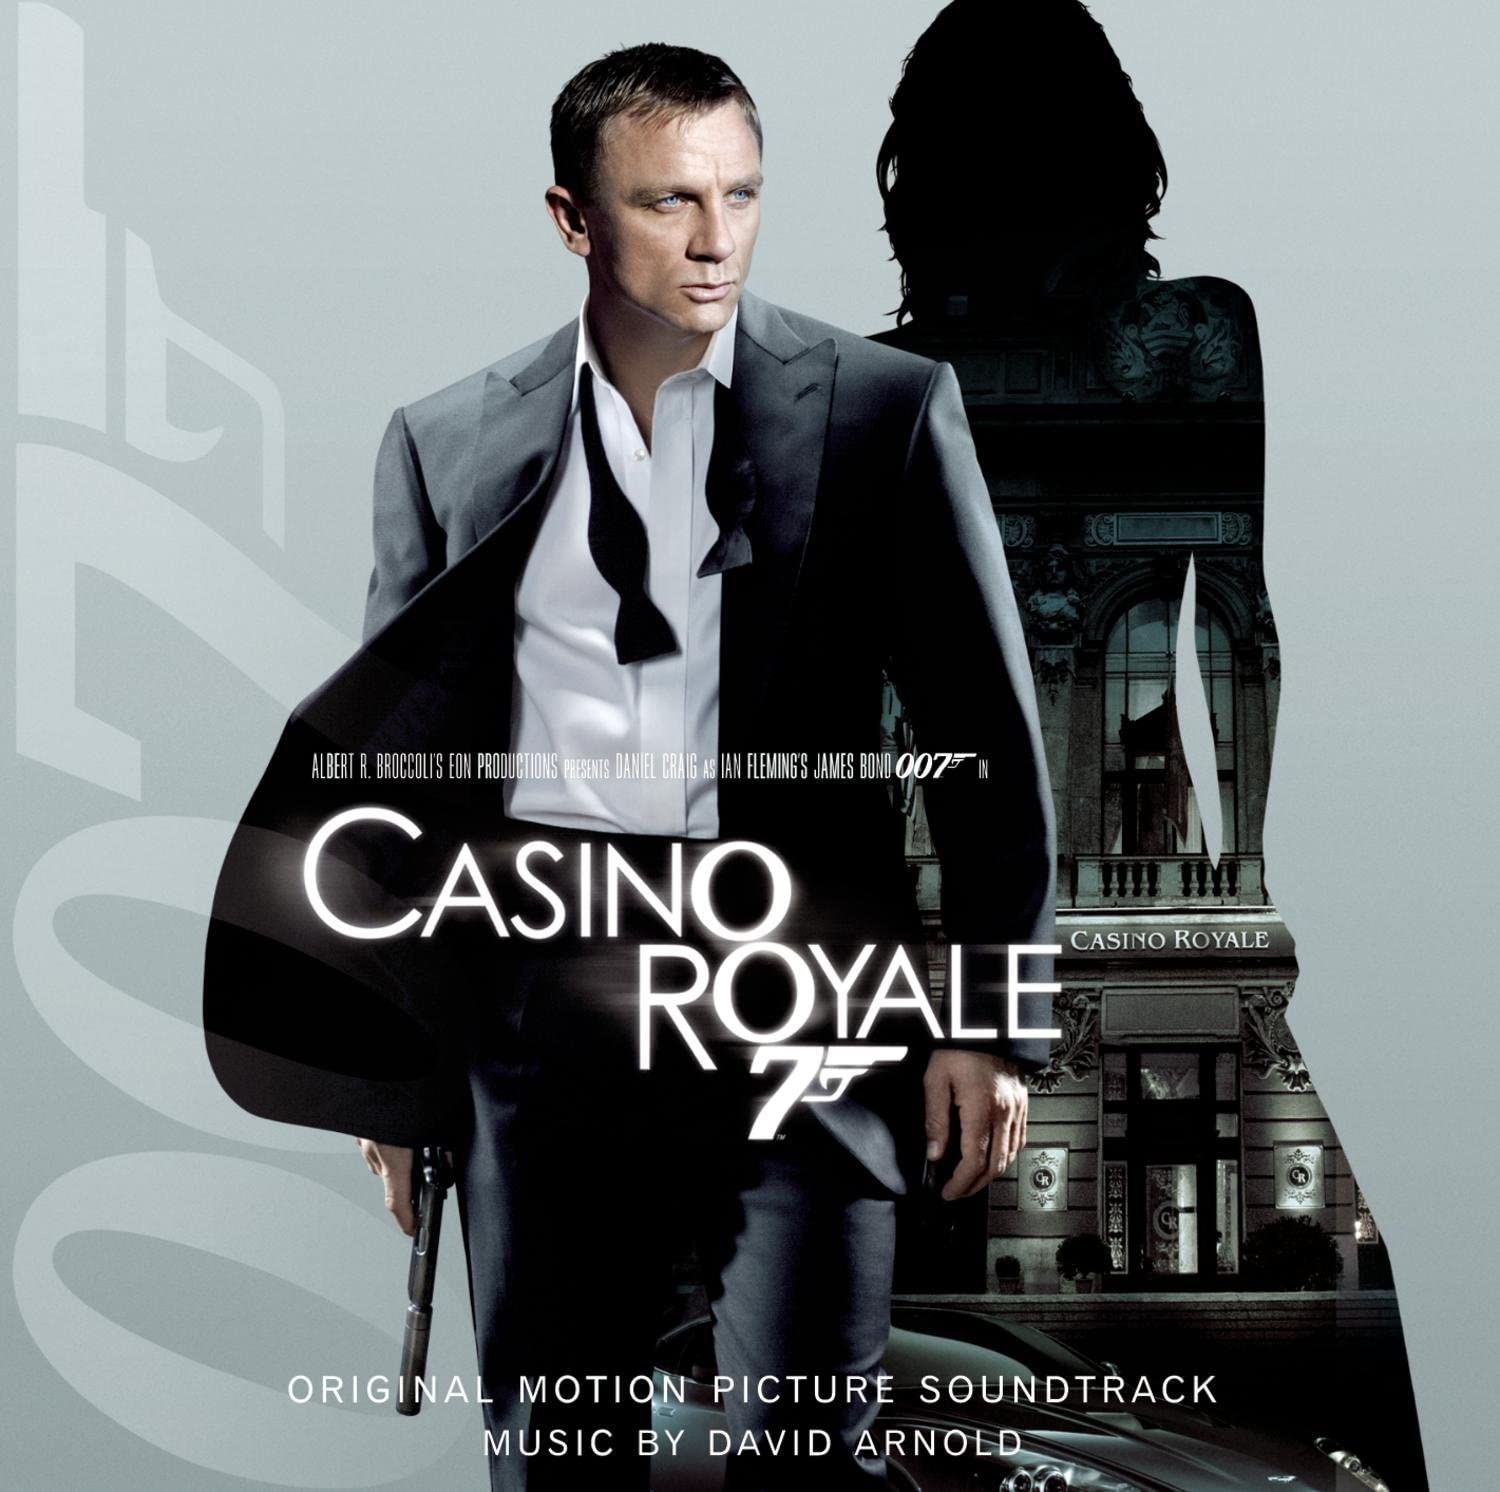 Theme song to casino royal igt guitar